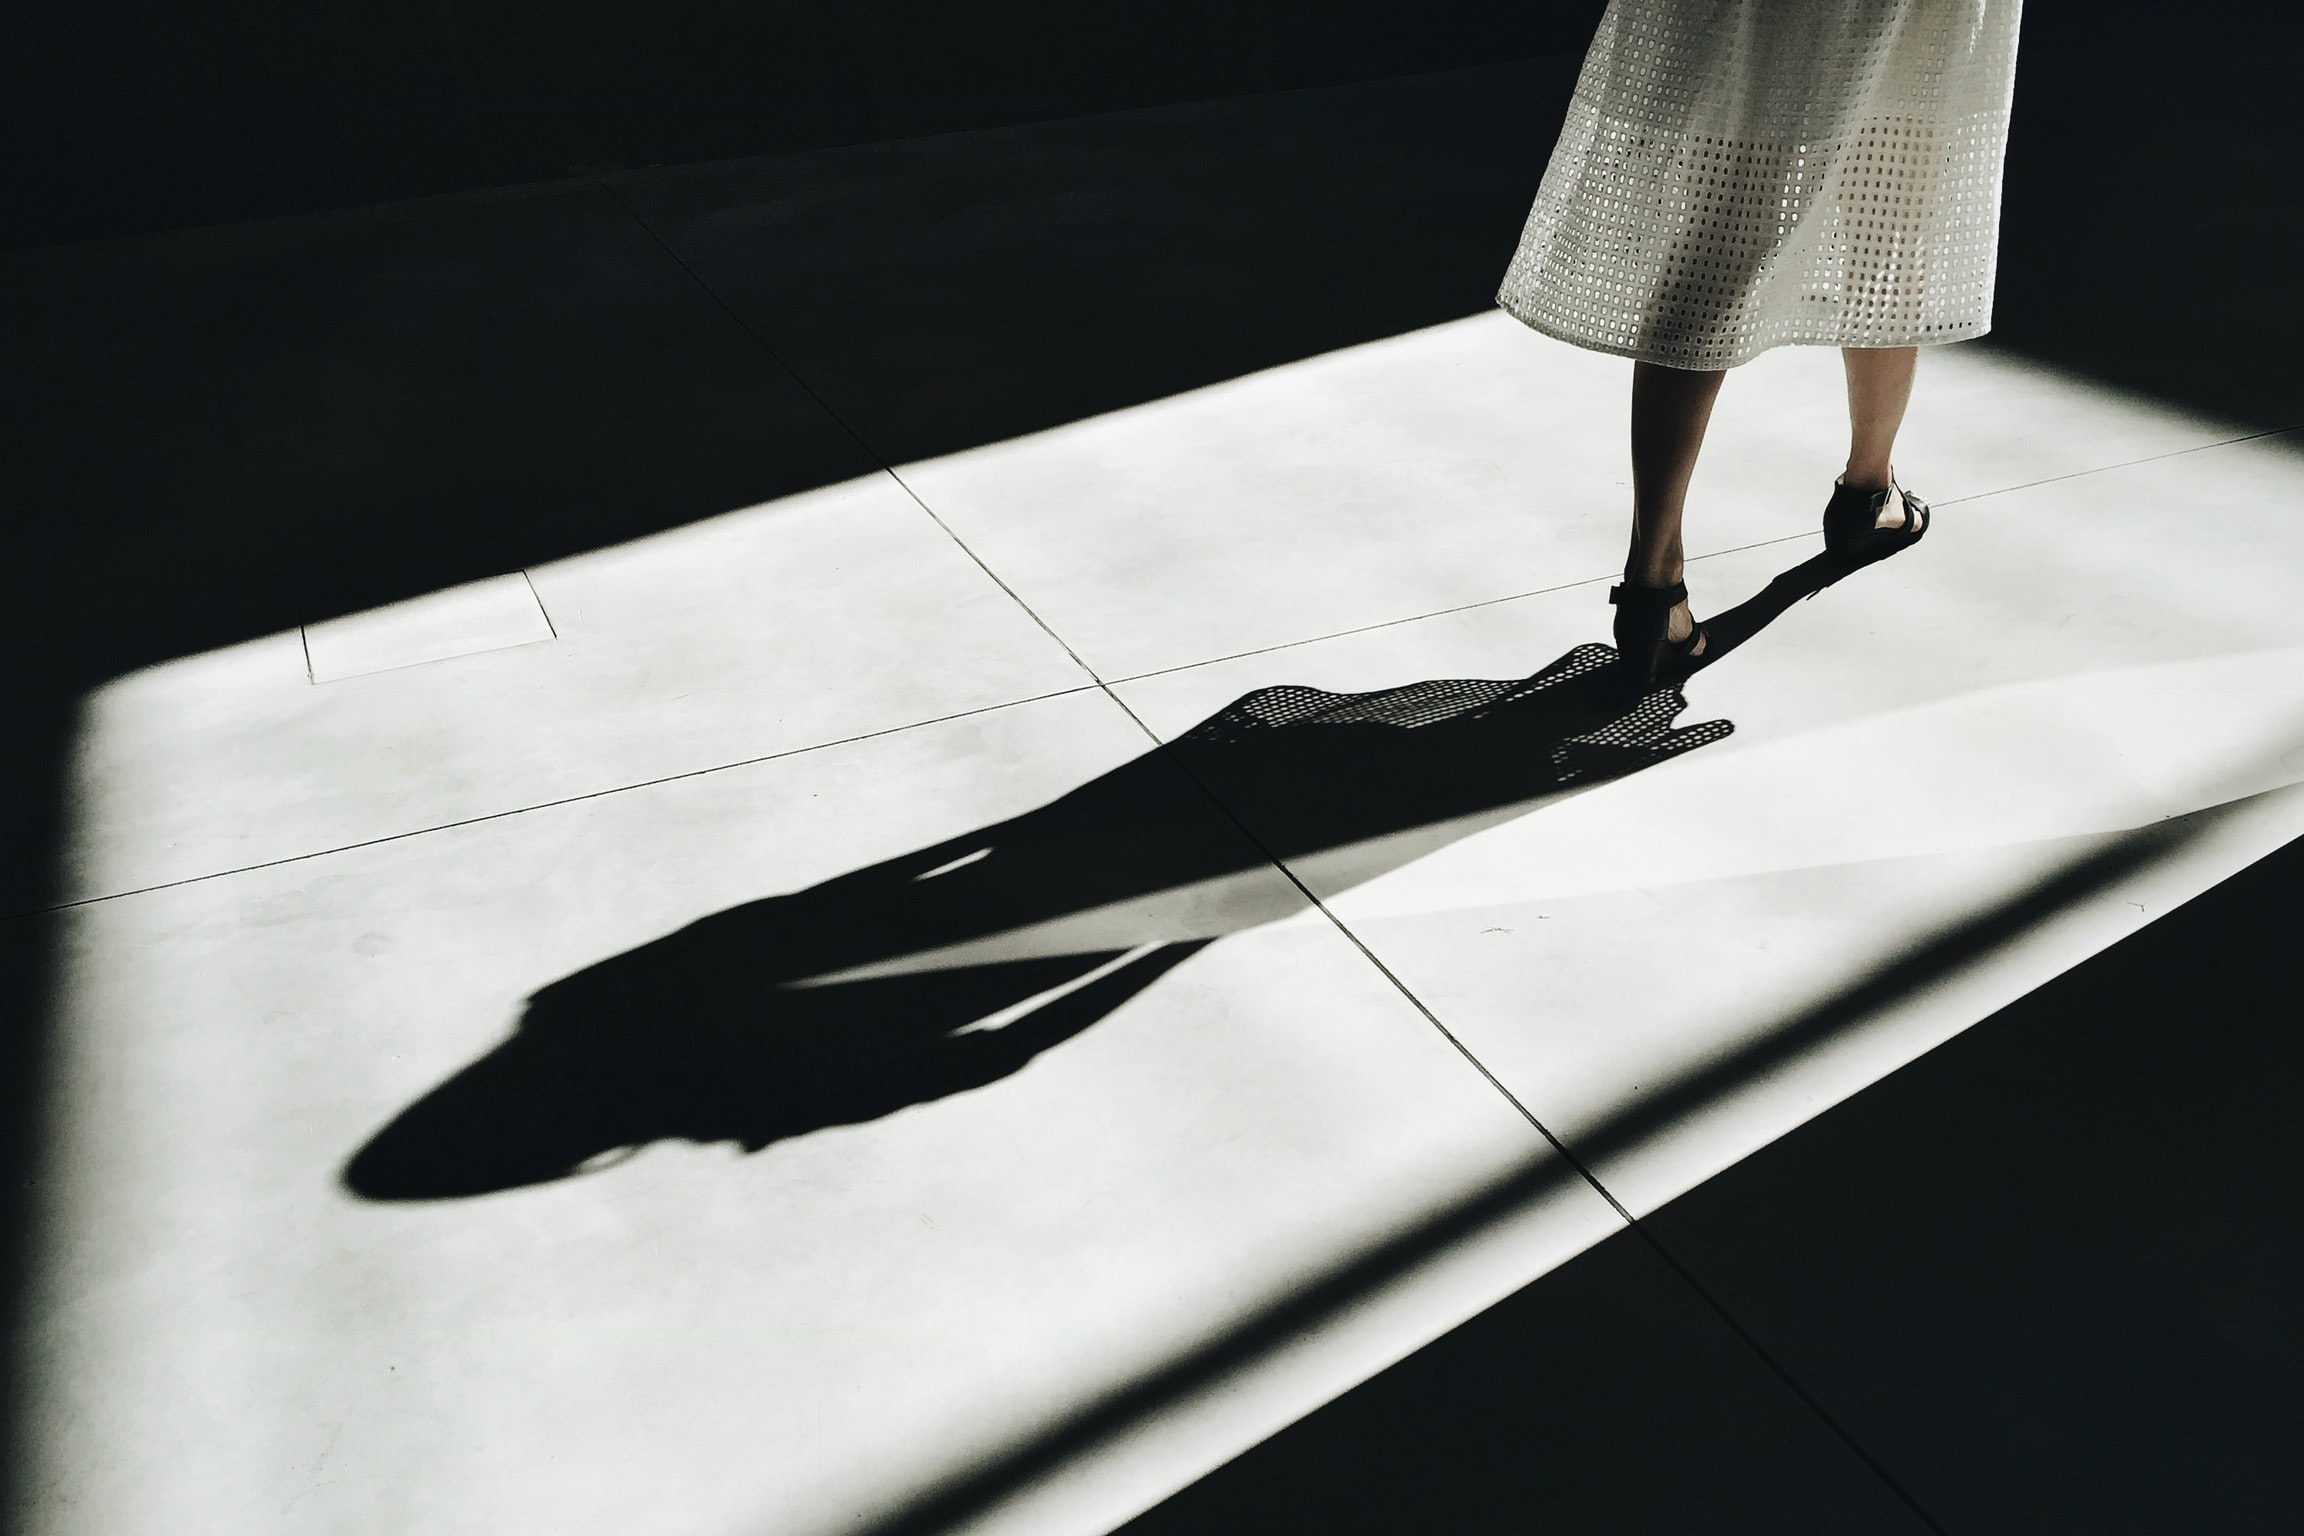 The Shadow stories